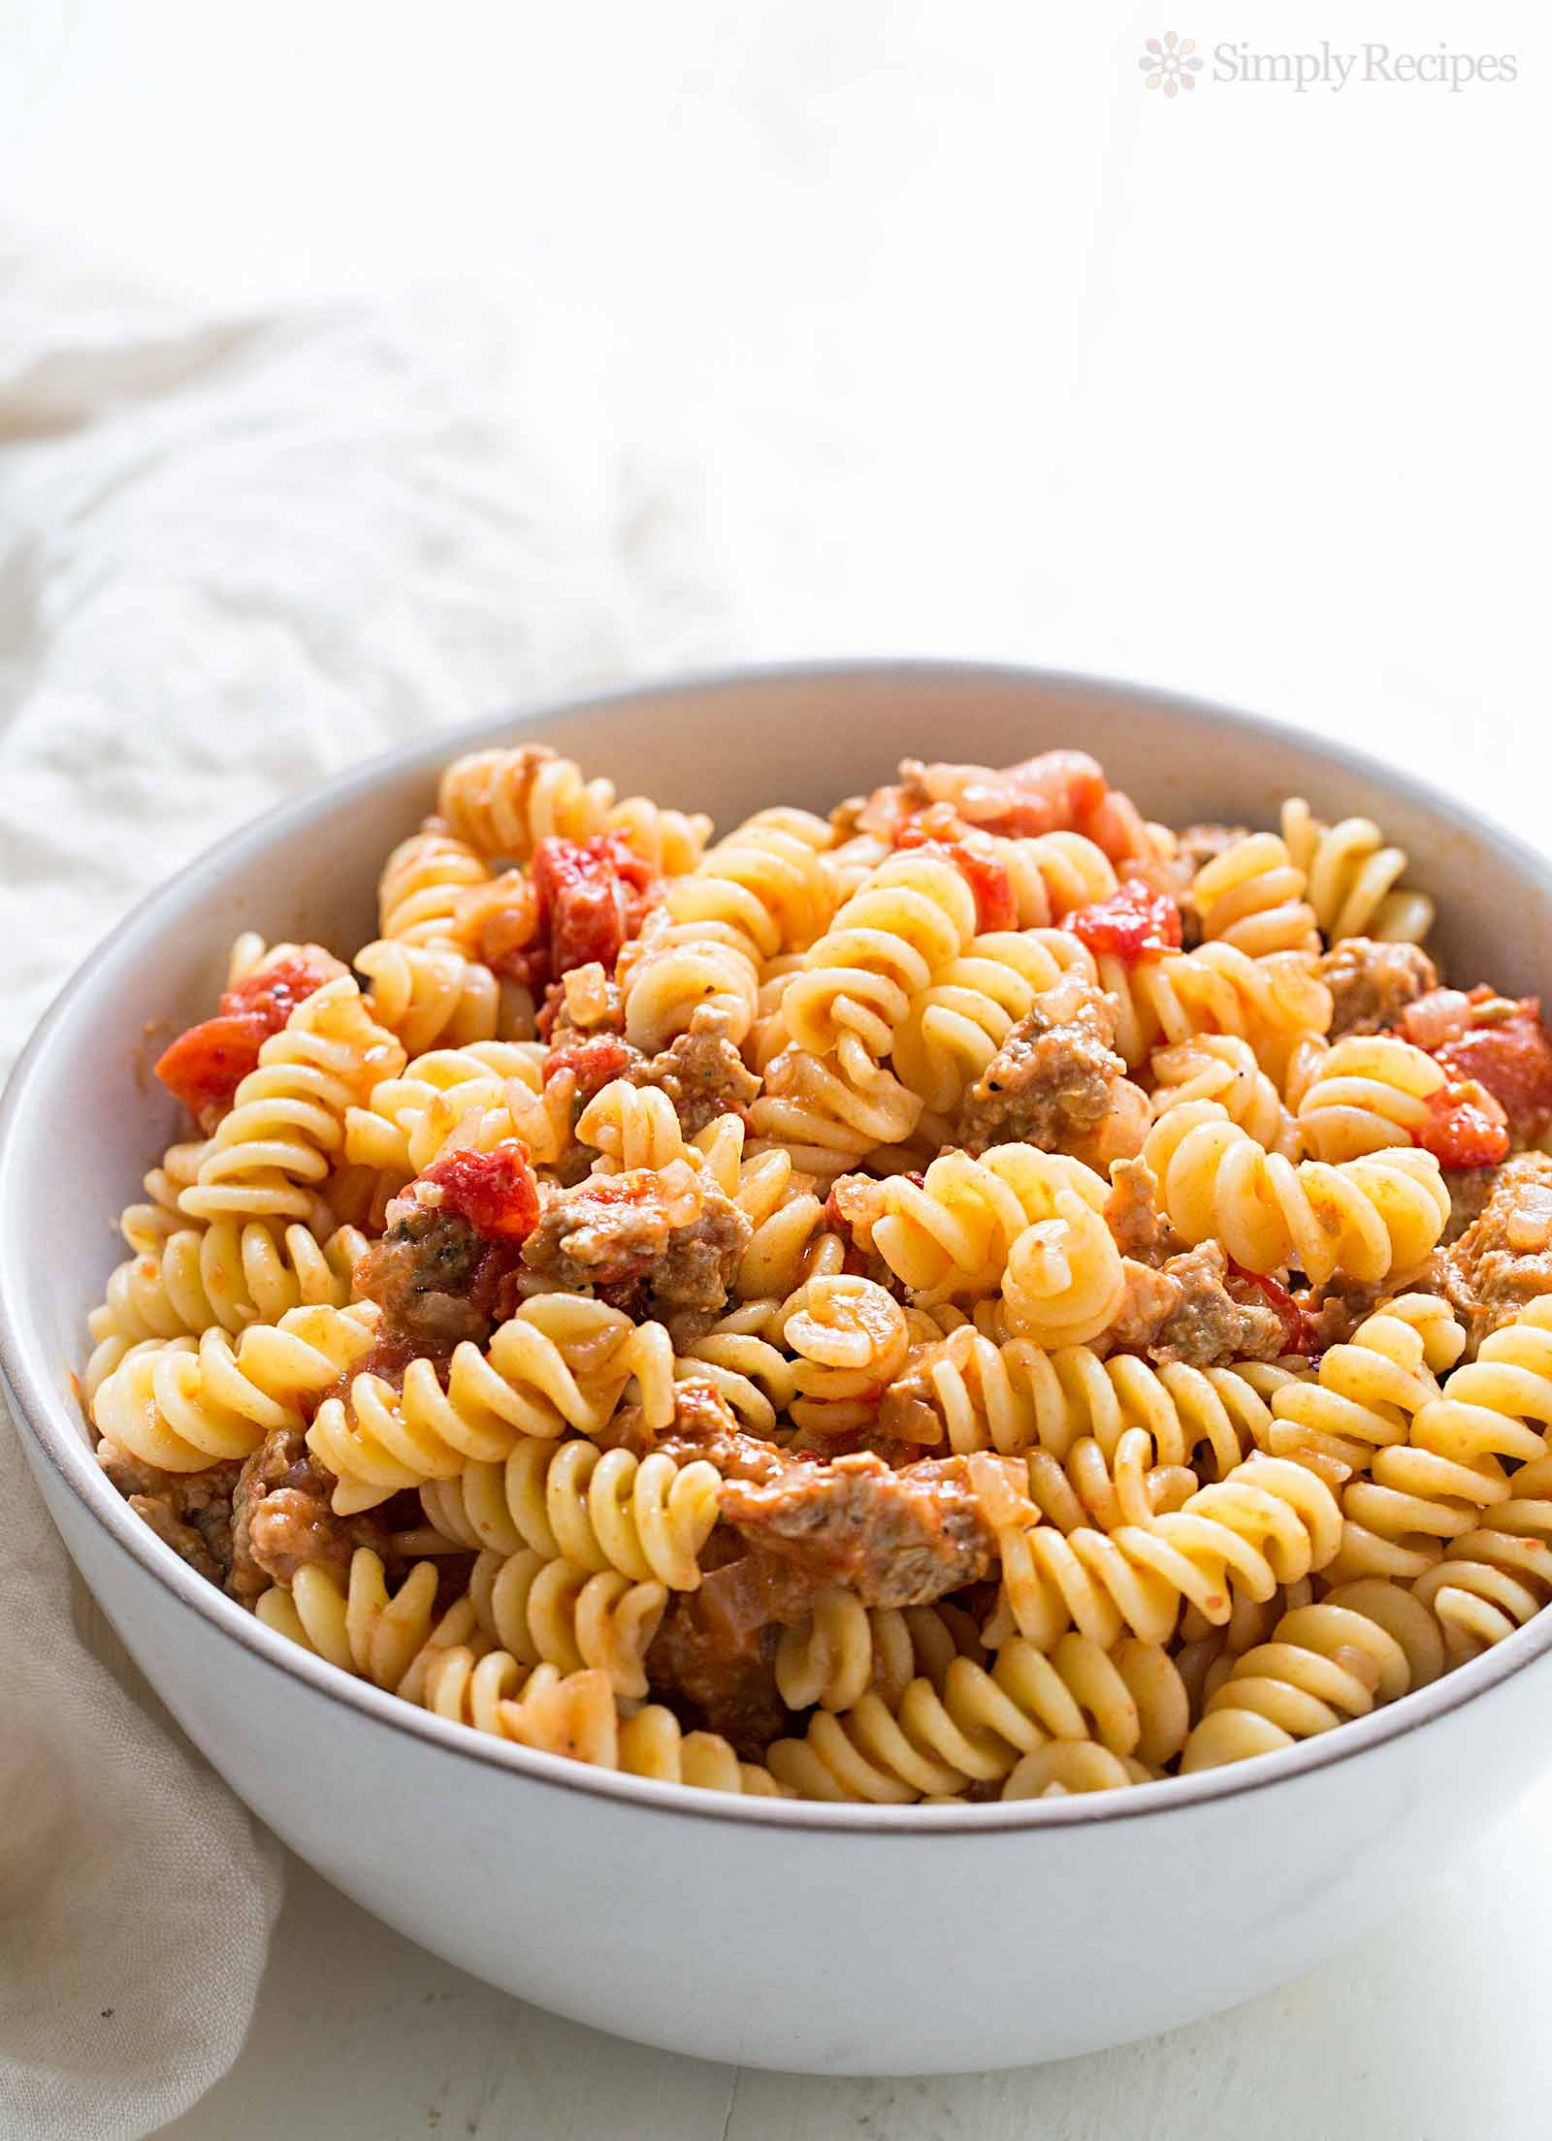 Pasta with Turkey Sausage and Smoked Mozzarella - Recipes Pasta Mozzarella